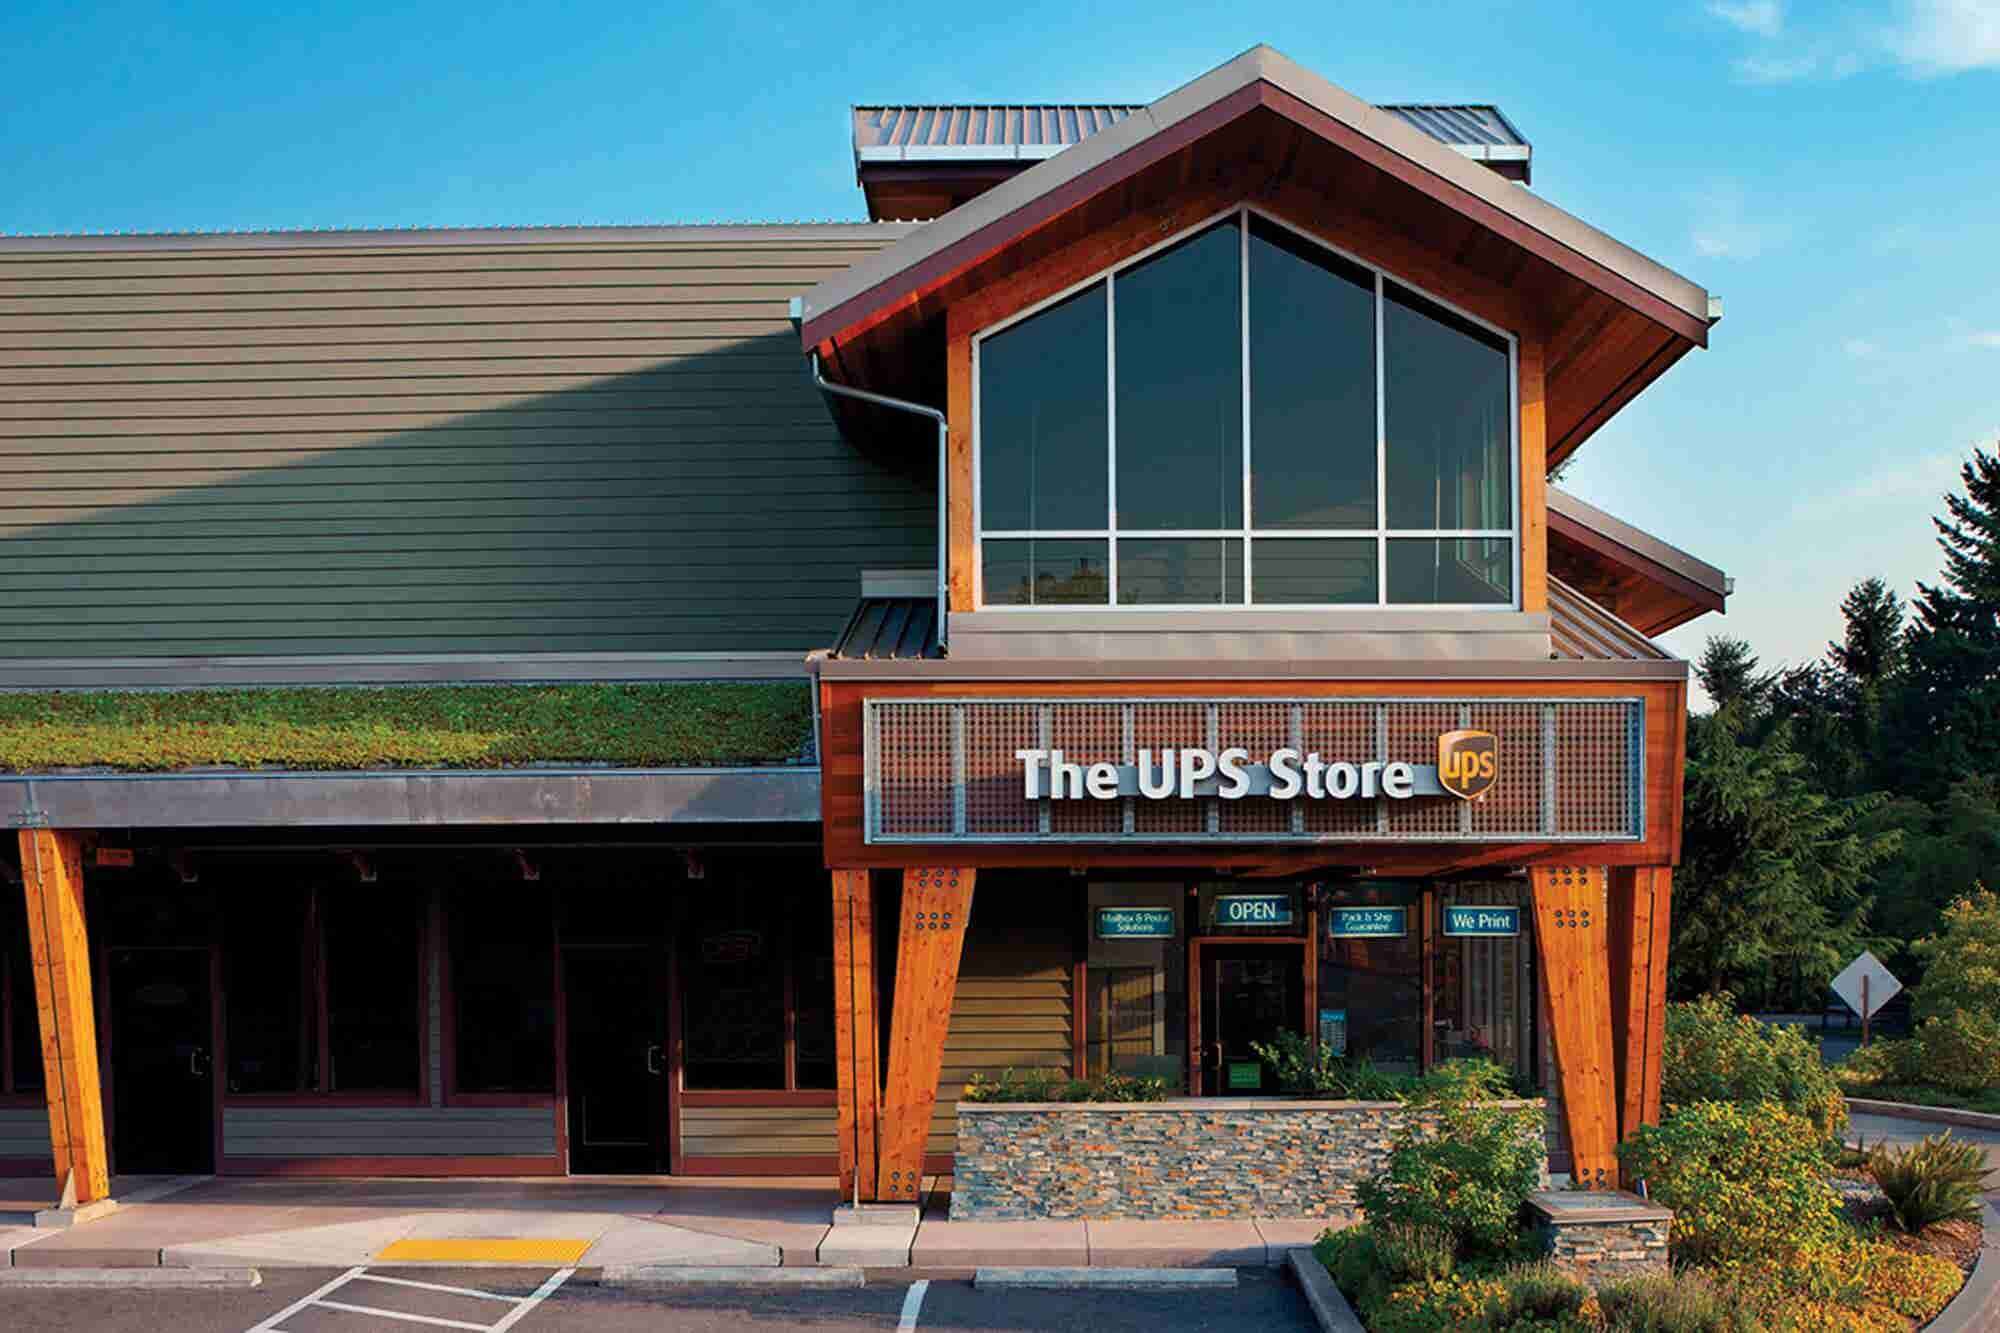 #5 on the Franchise 500: The UPS Store Gets a Consumer-Friendly Makeover